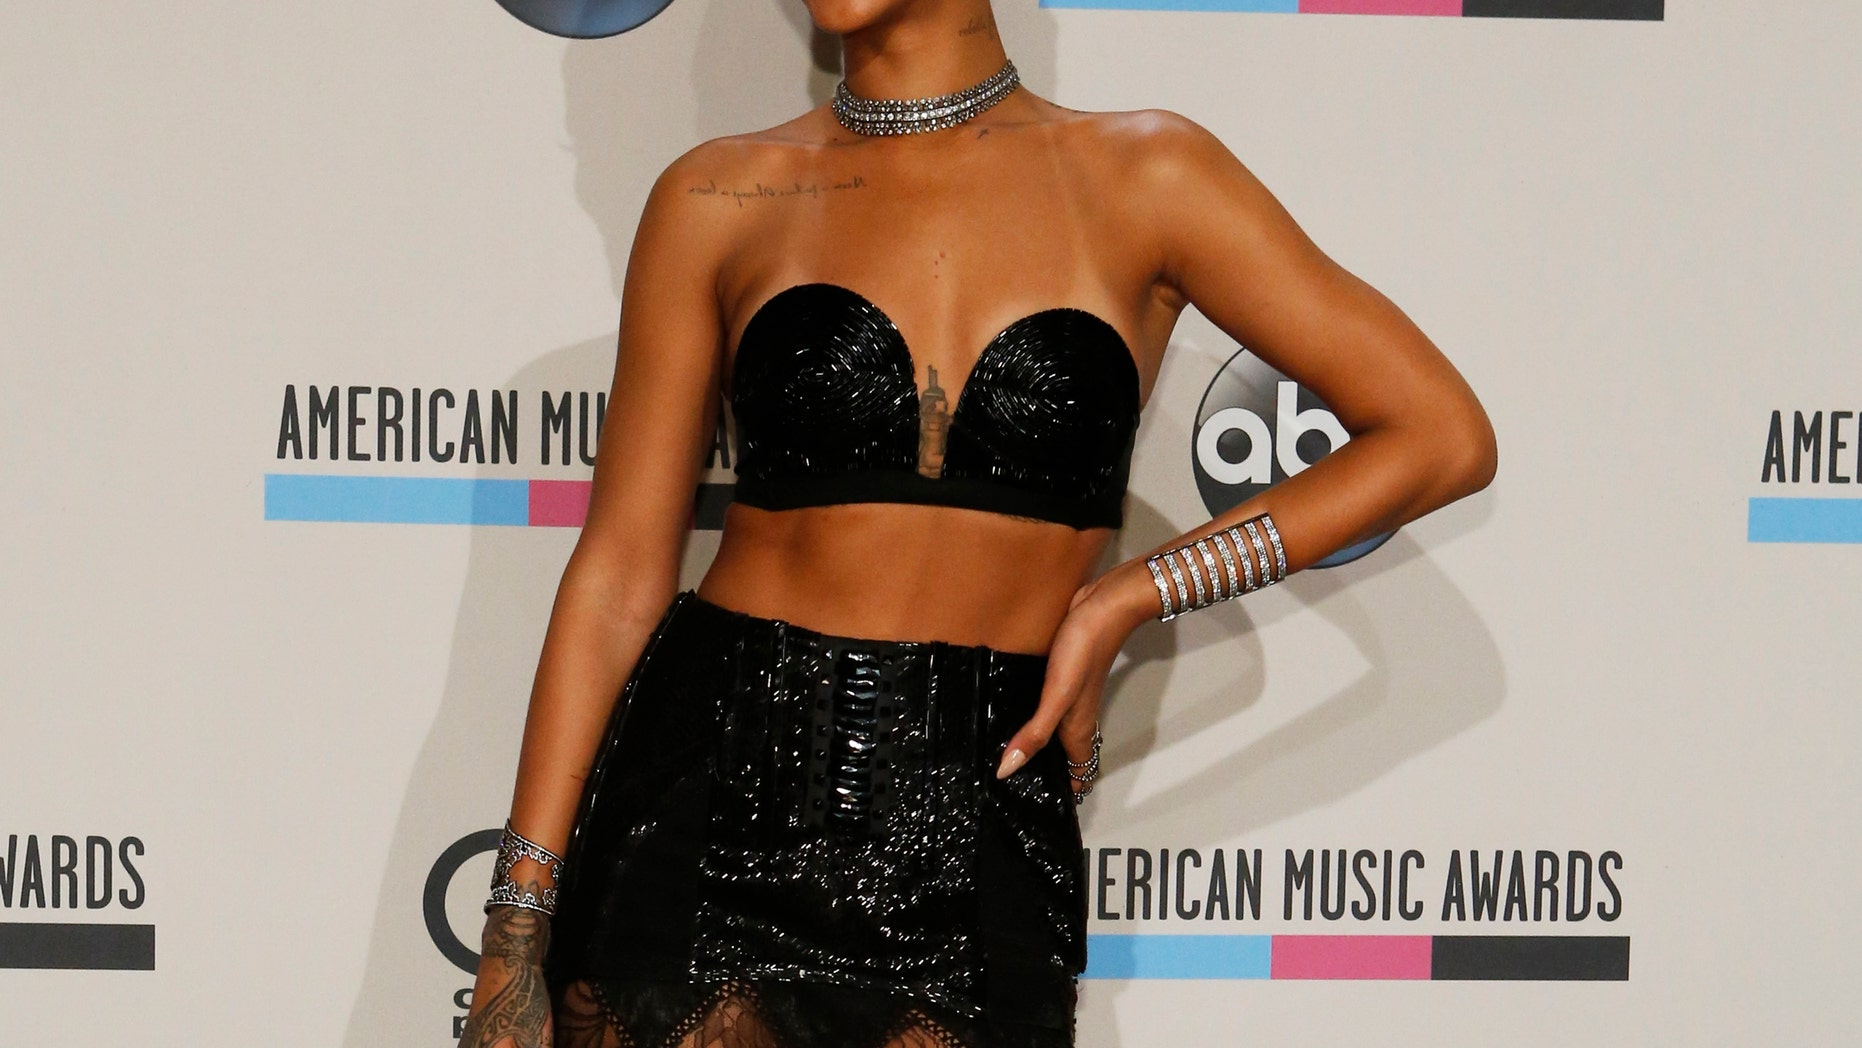 November 24, 2013. Singer Rihanna poses backstage at the 41st American Music Awards in Los Angeles.